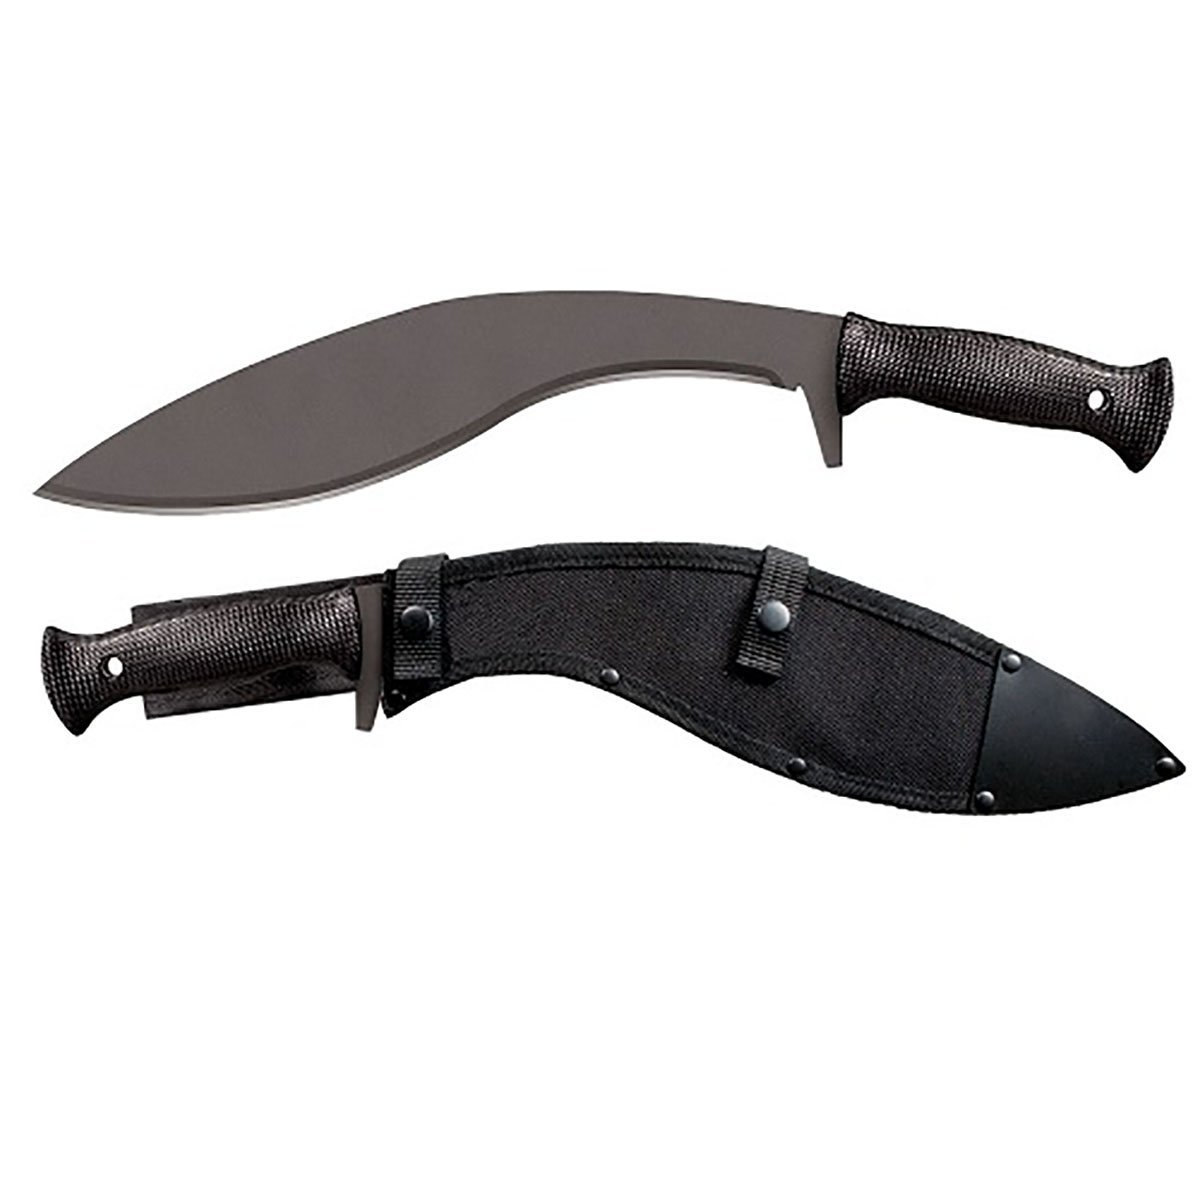 4000352 Cold Steel Kukri Plus Machete with Sheath - 97Kmps